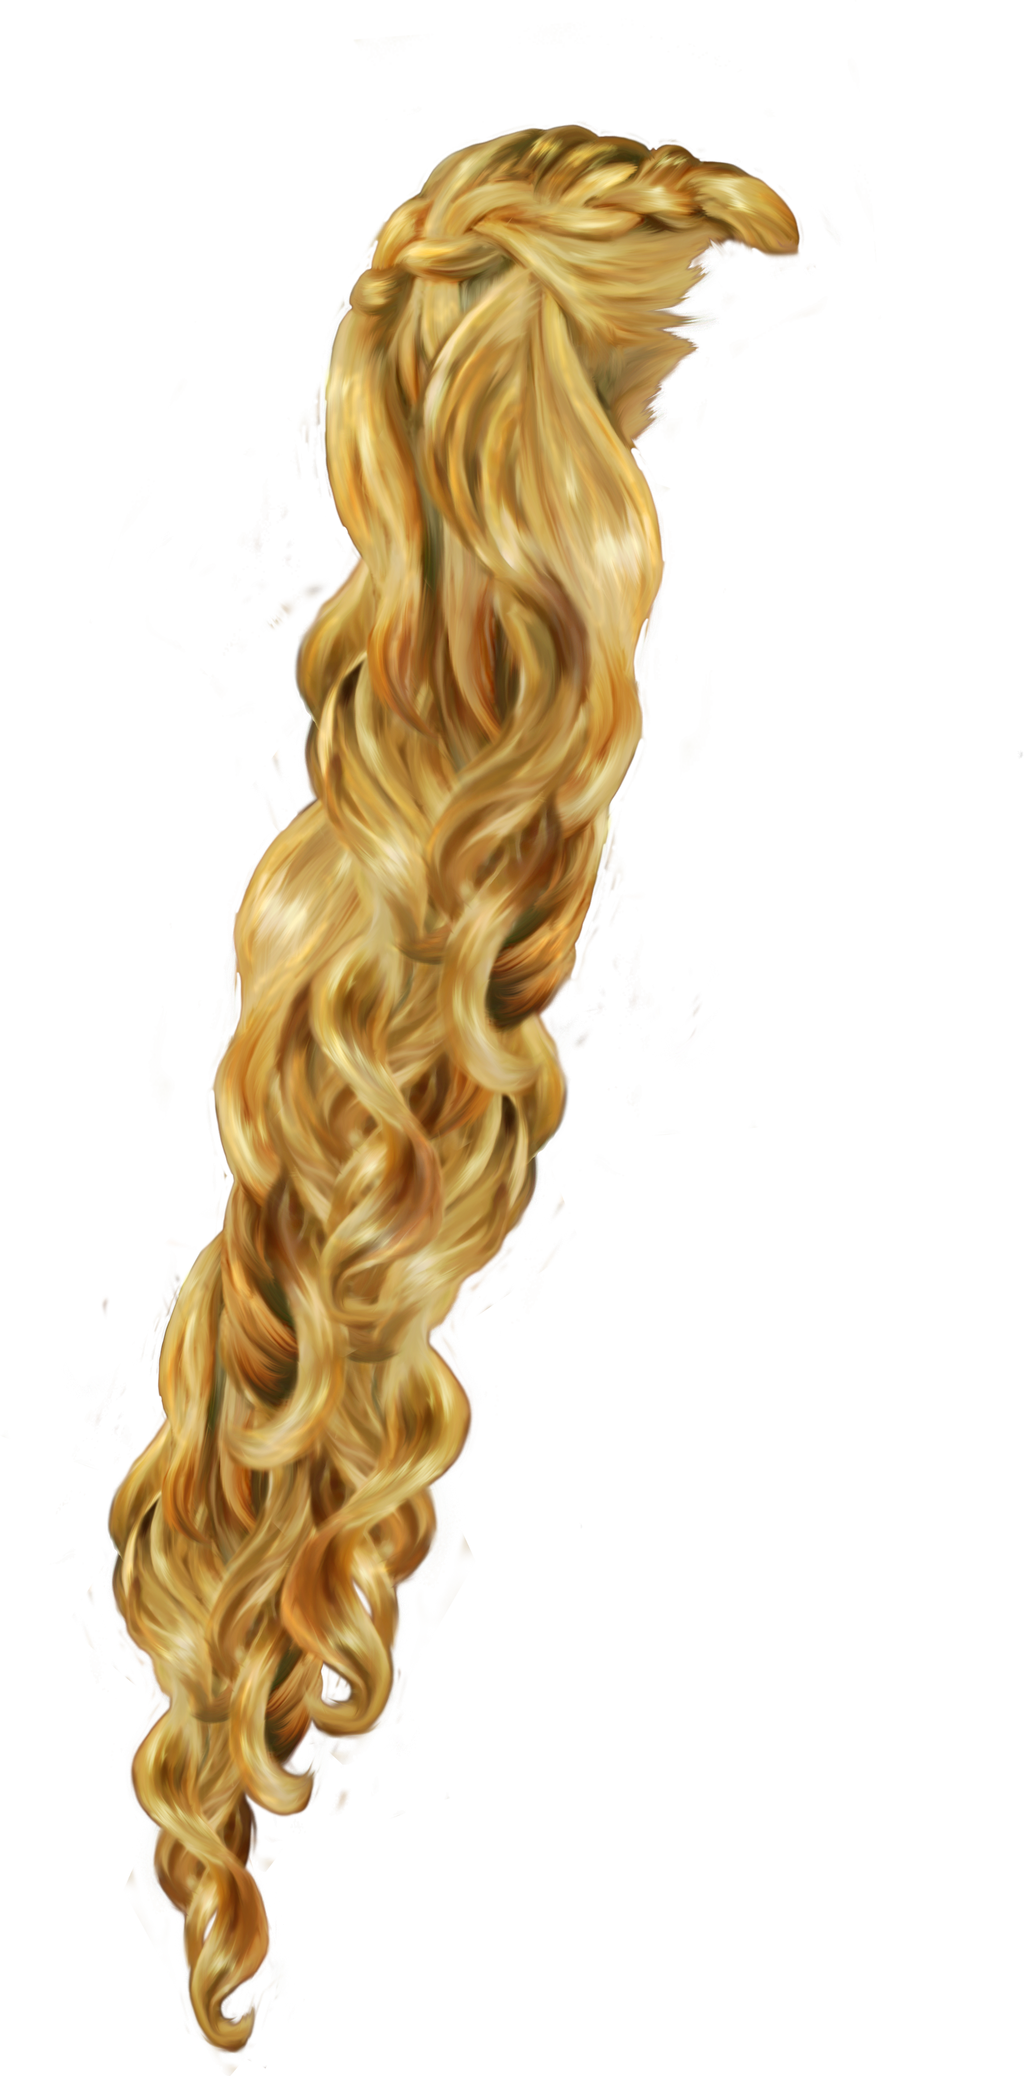 649 Rapunzel By Tigers Stock On Deviantart